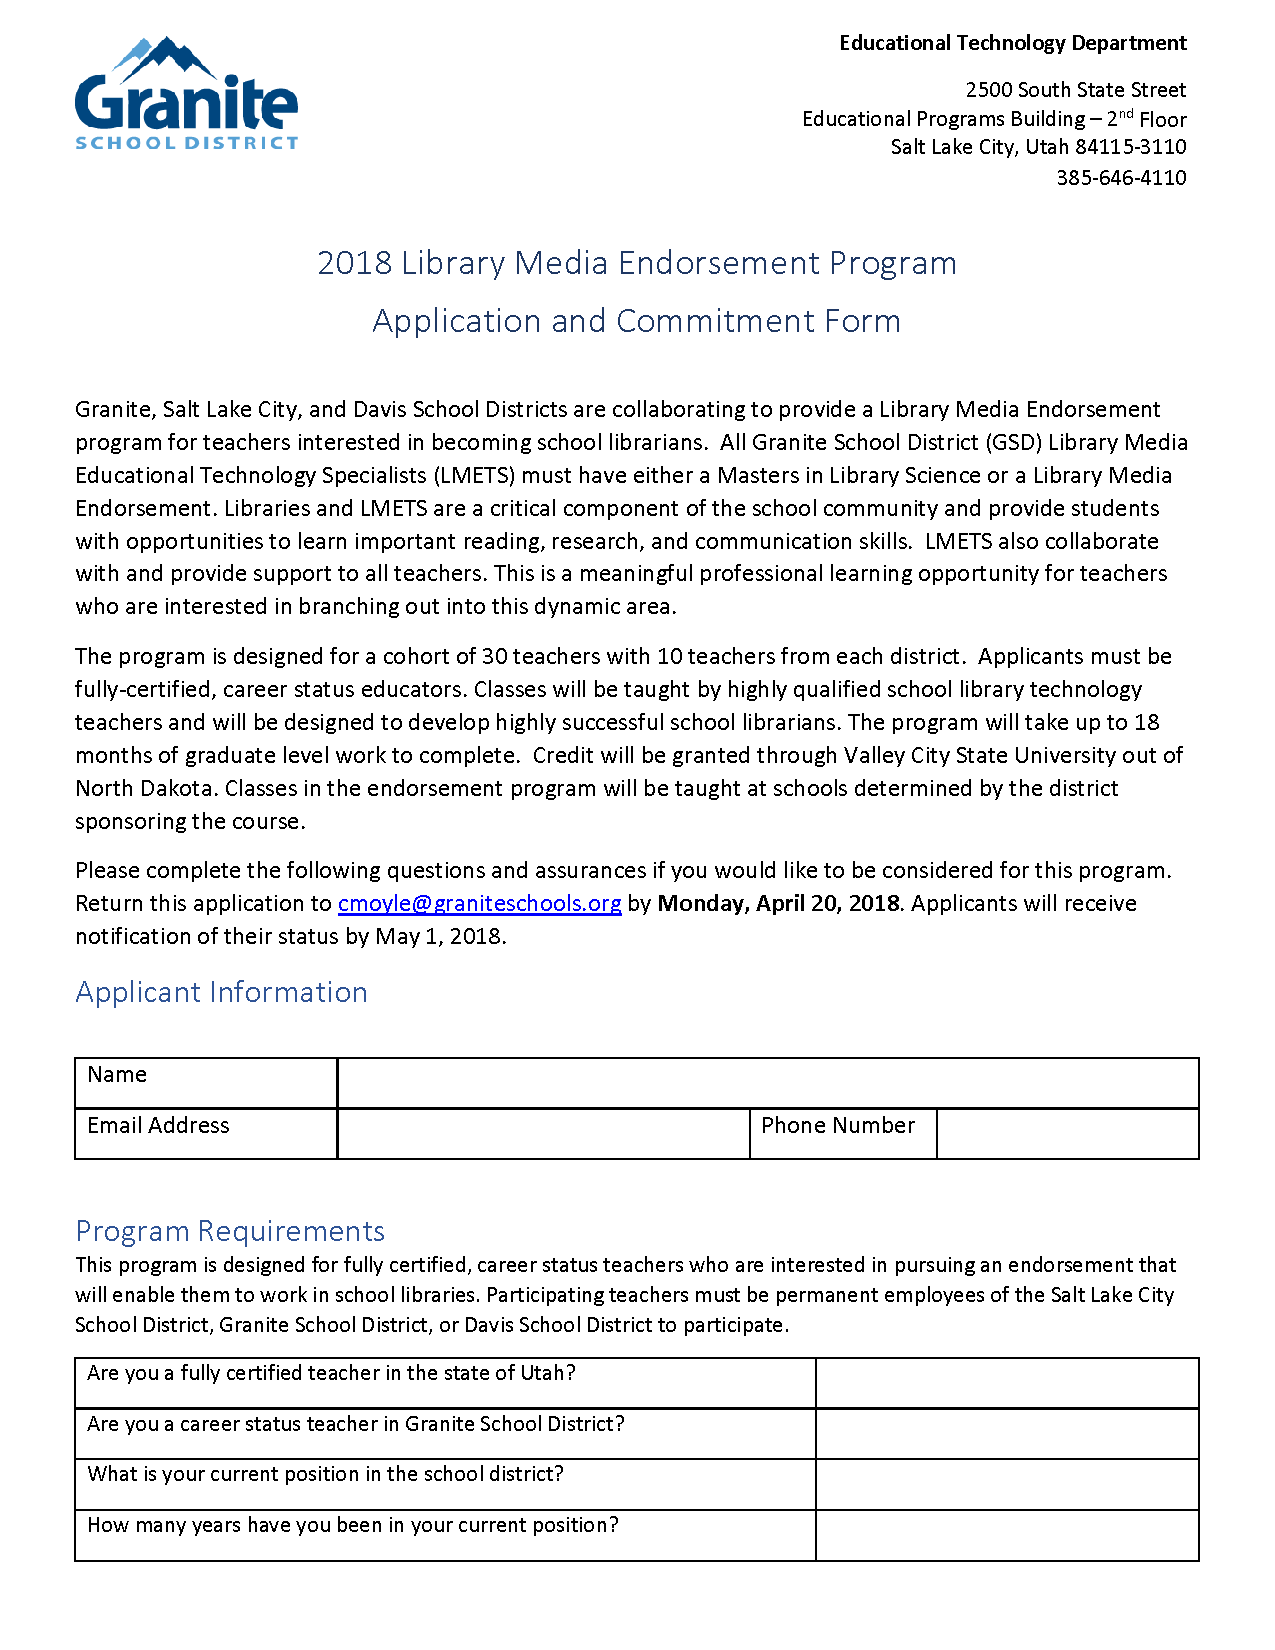 2018 Library Endorsement Application - Fillable_Page_1